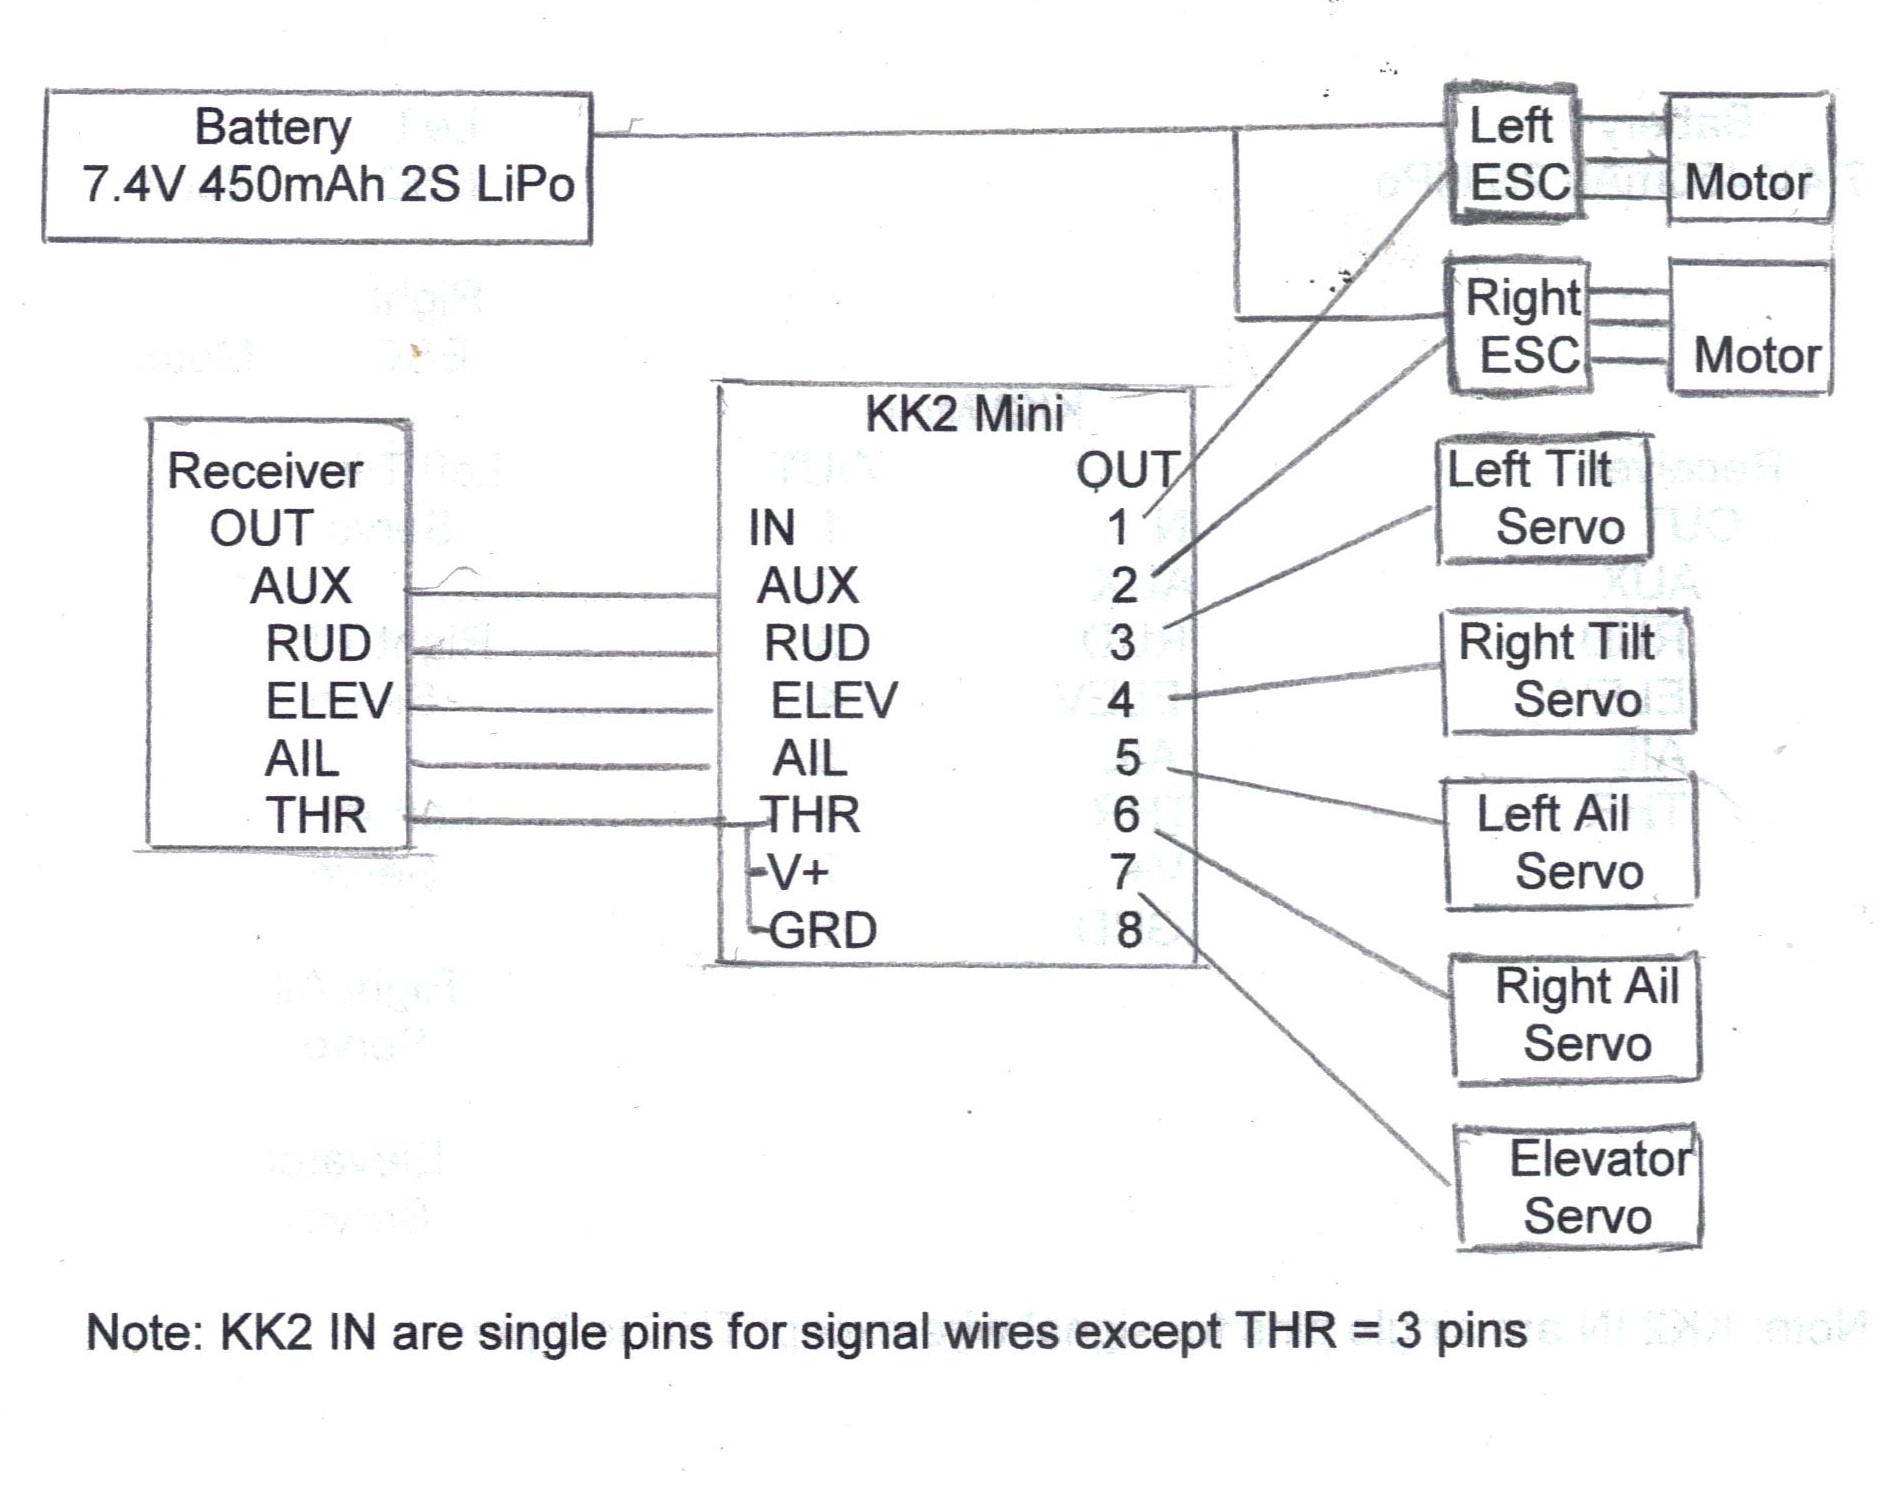 kk2 mini board no signal message page 4 kk2 wiring 001 jpg